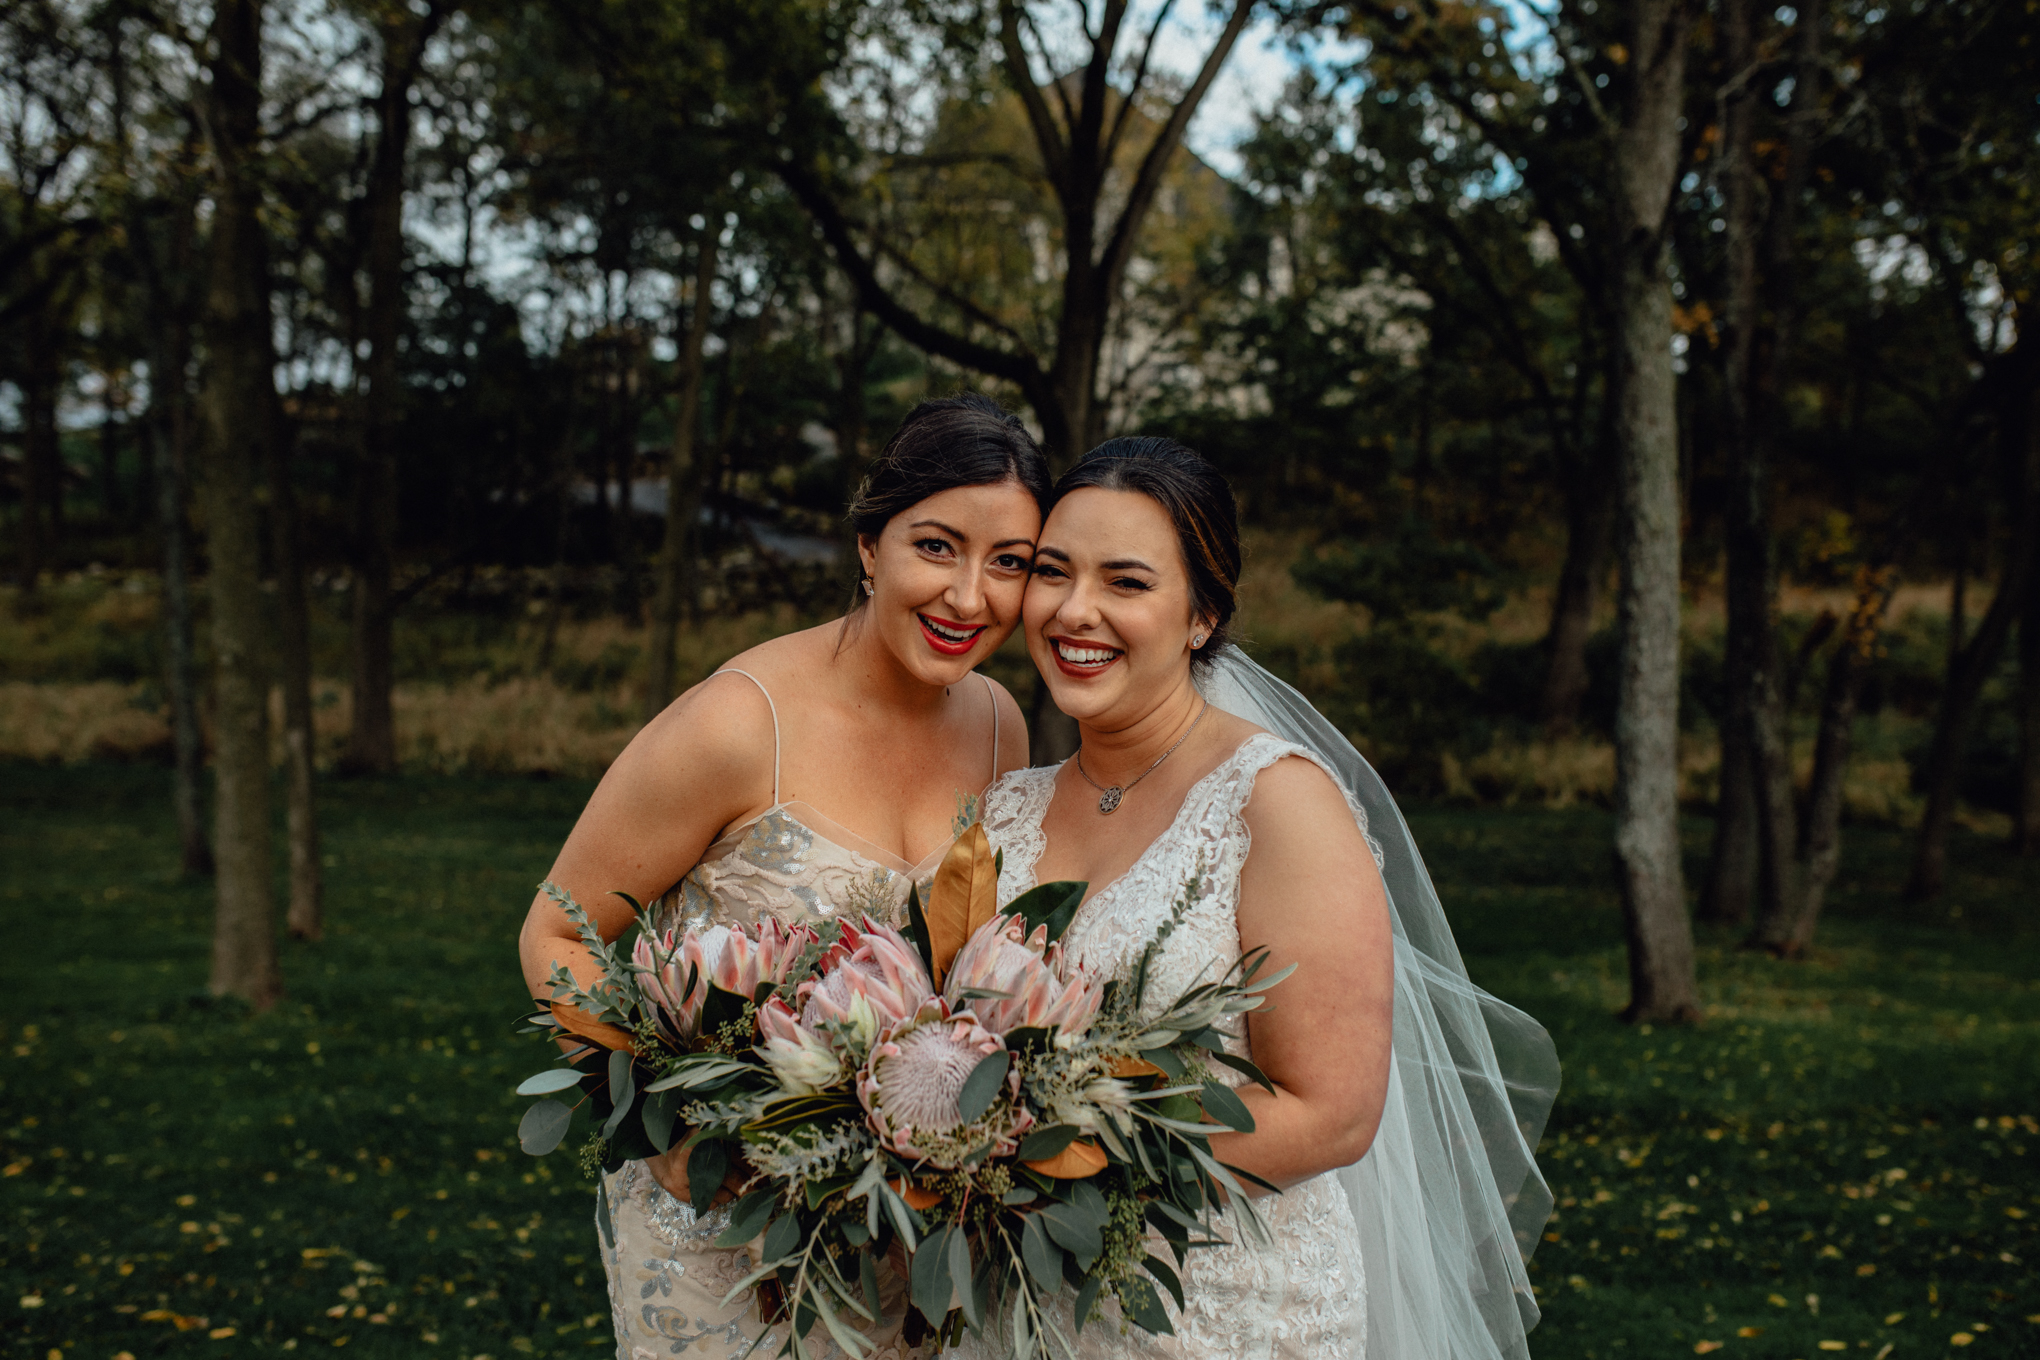 bridesmaid-smiling-with-bride-in-grass.jpg